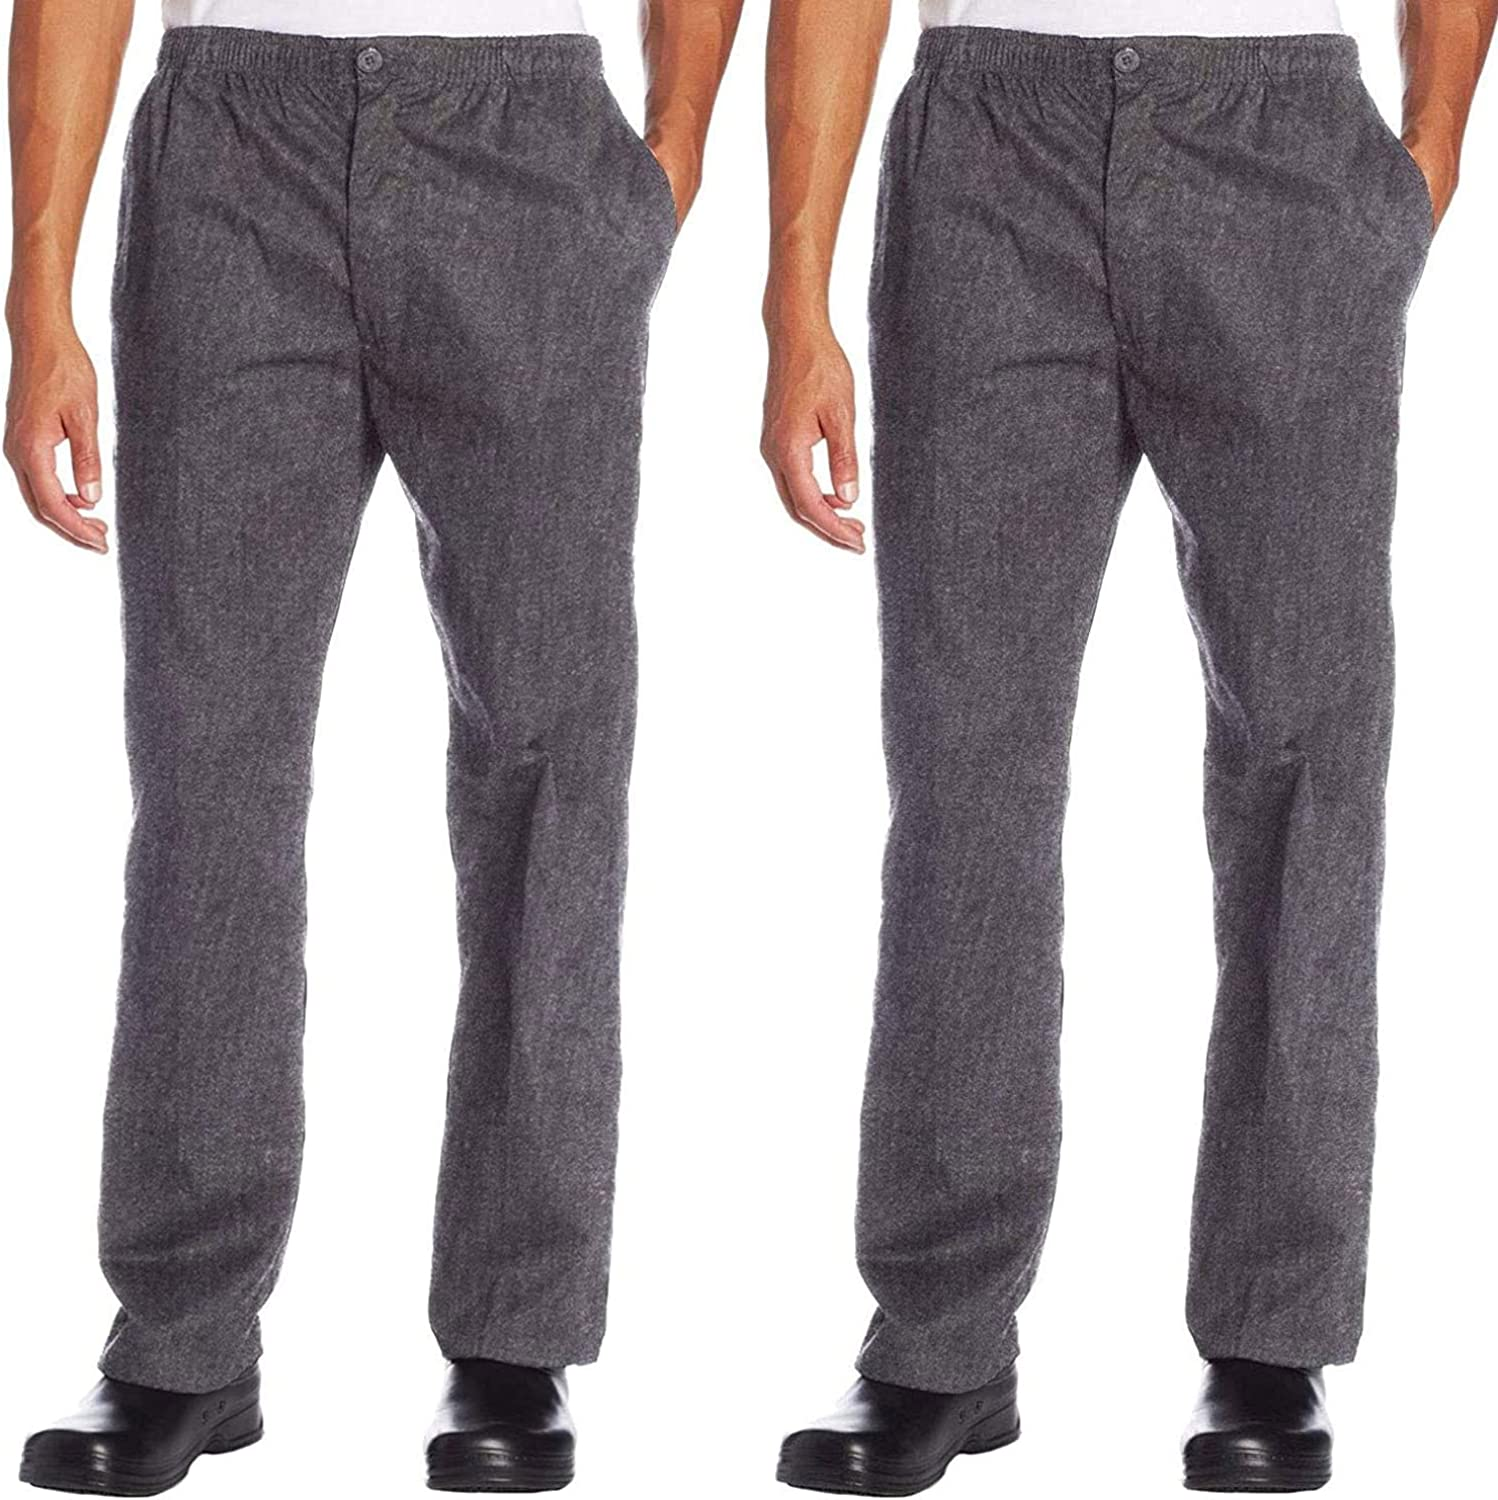 Chef Code 2-Pack Classic Trouser Pant New color with Waist - Elastic National uniform free shipping